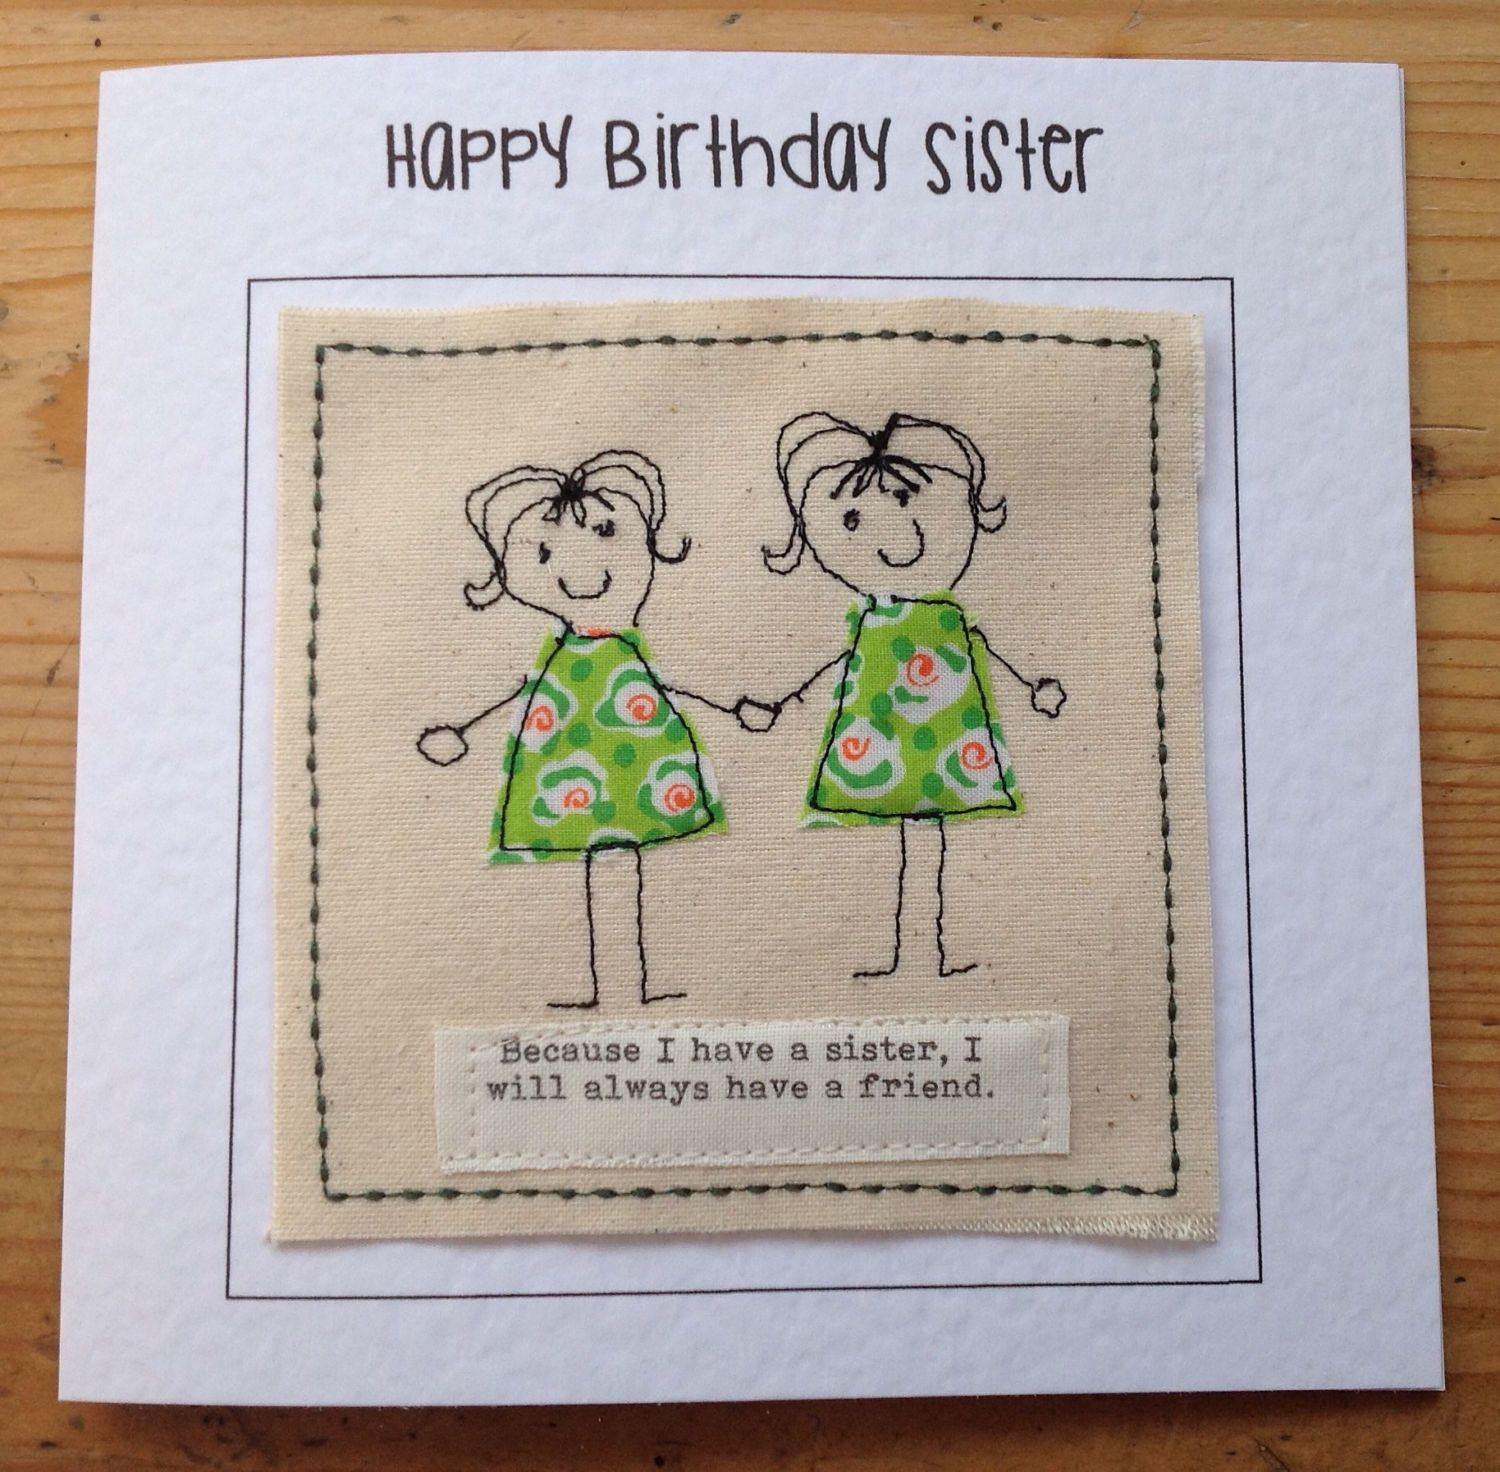 sister birthday individually created with stitches and